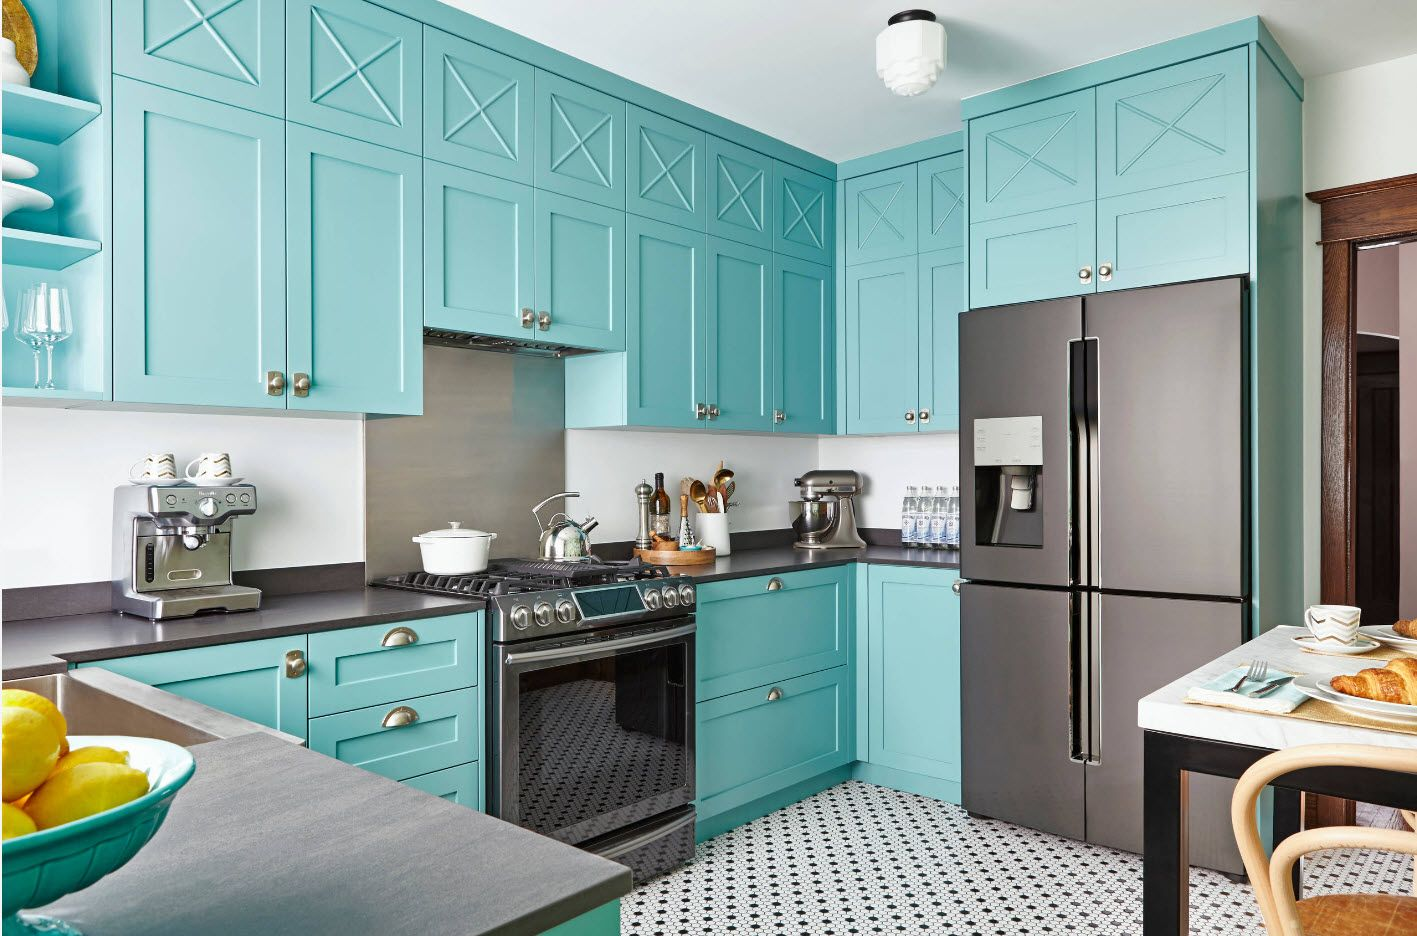 Nice tender turquoise hue for the furniture set at the kitchen